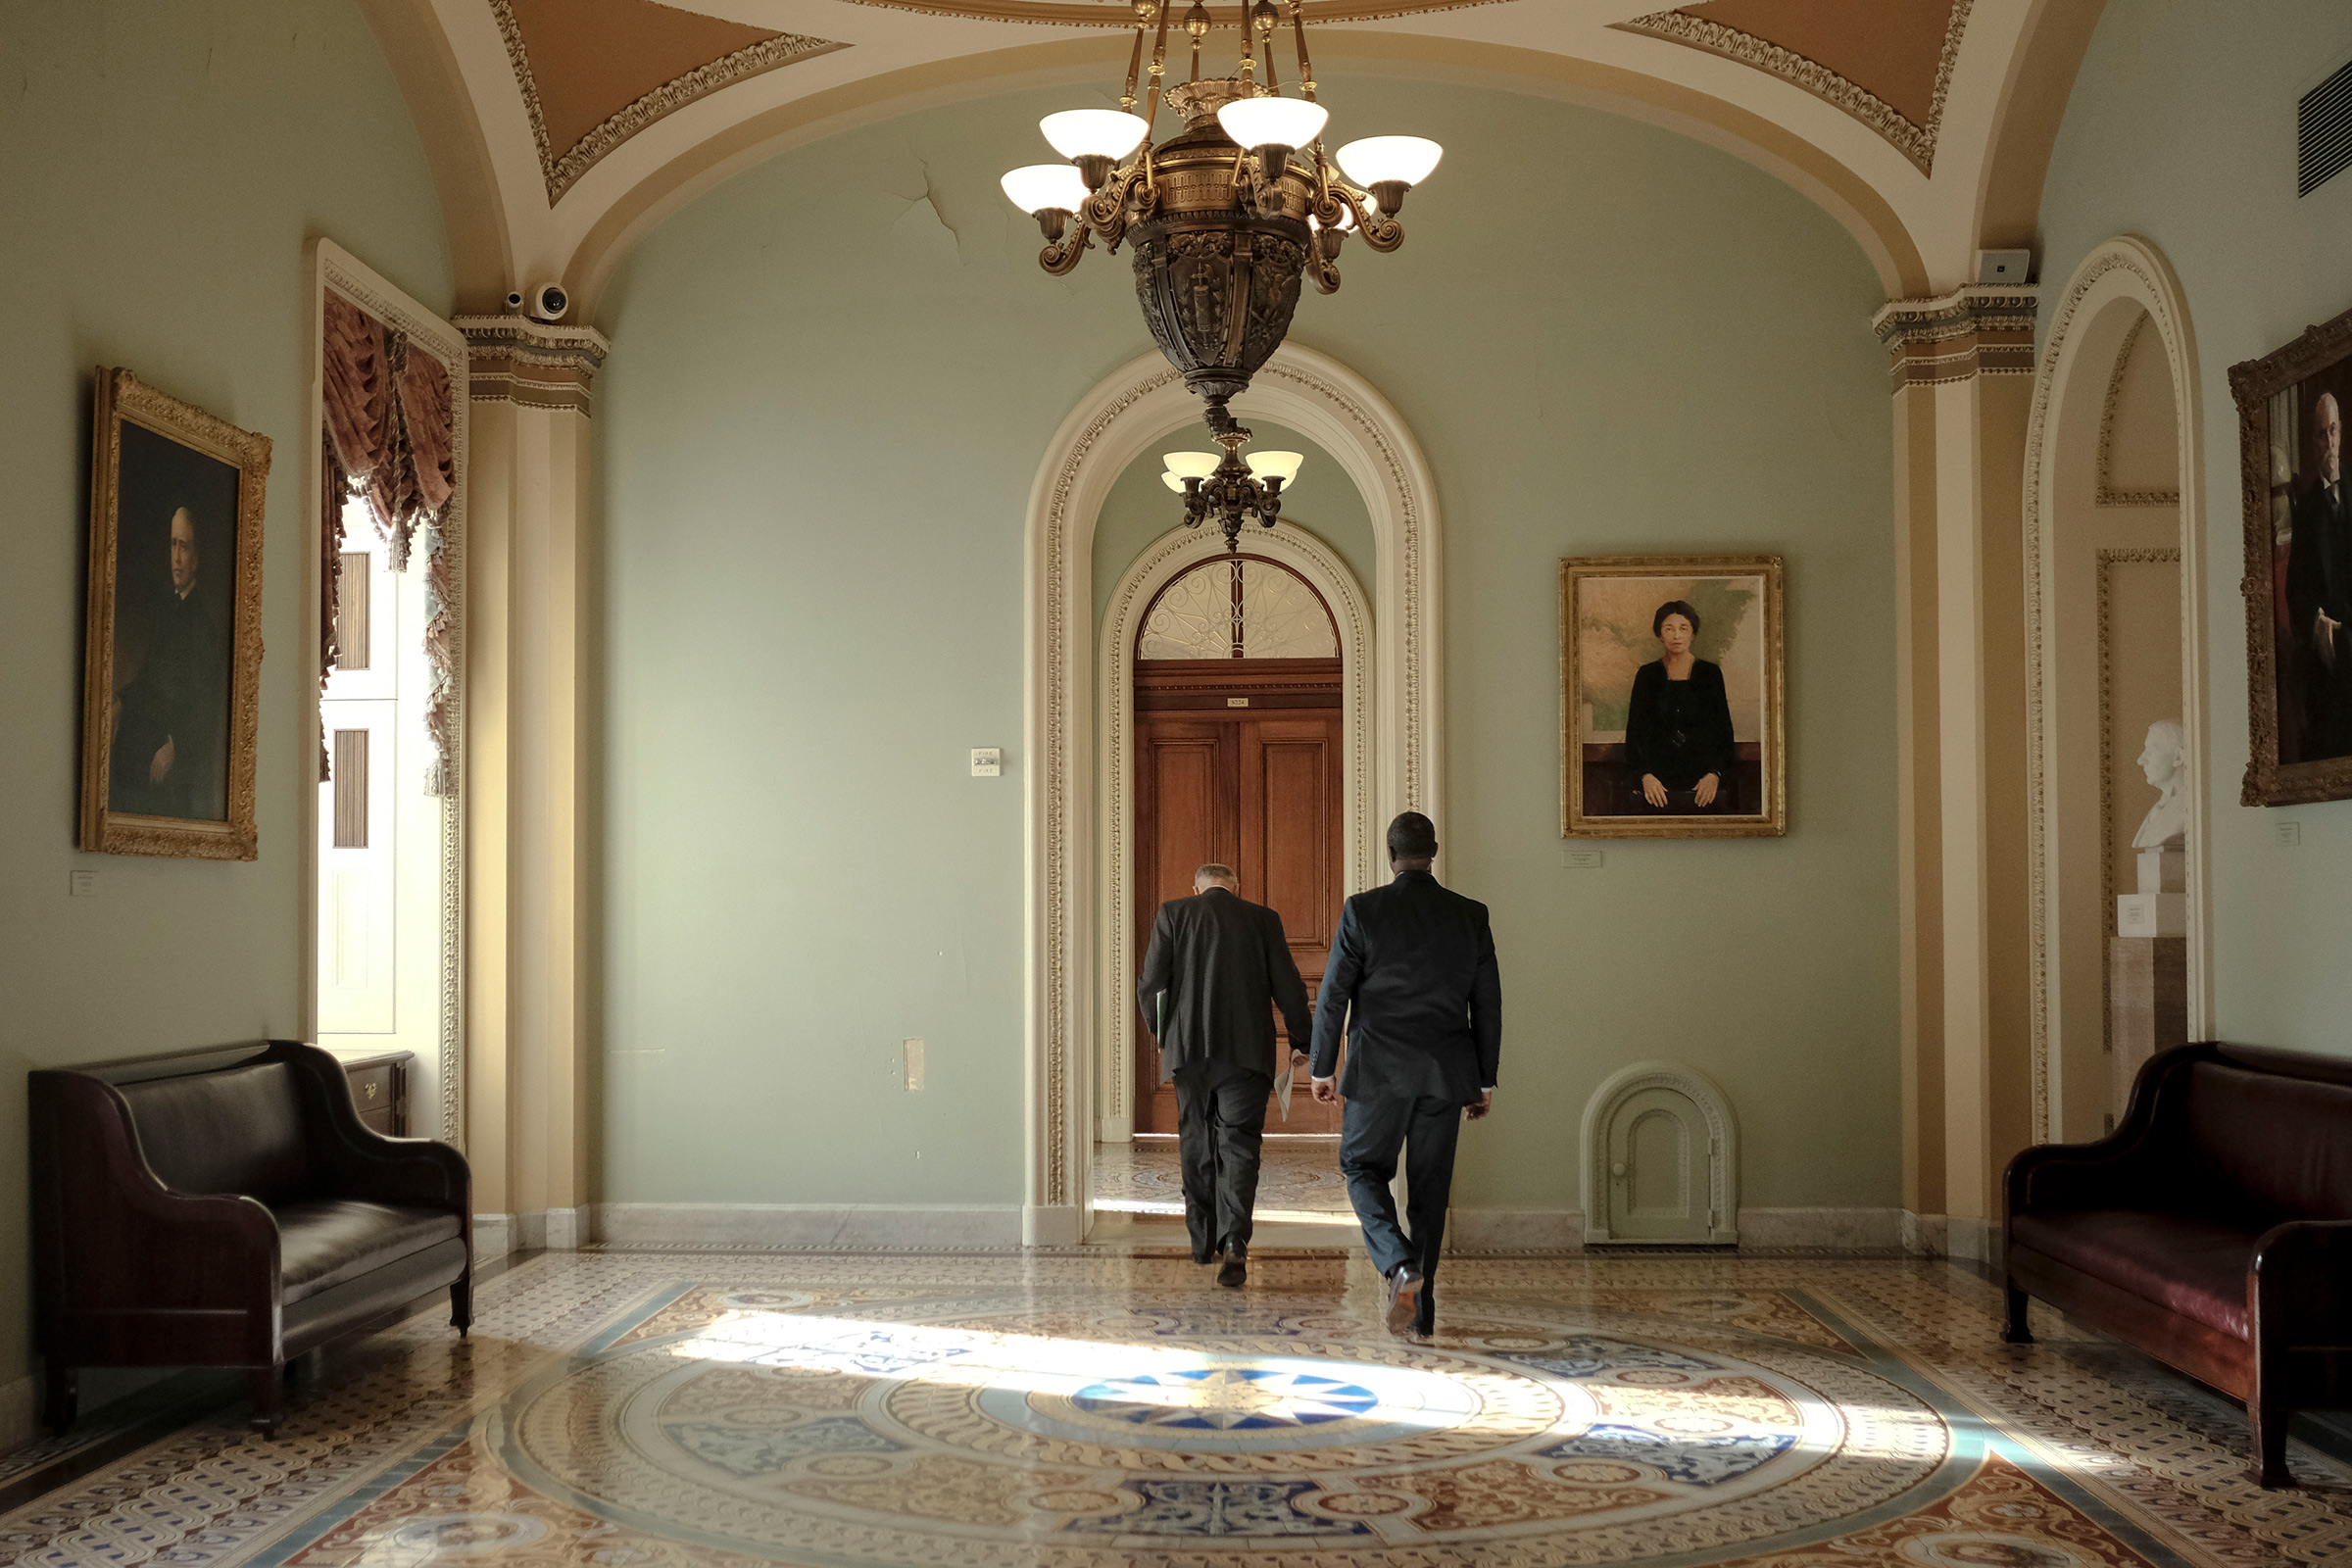 Senate Minority Leader Chuck Schumer (D-N.Y.) walks to his office before the articles of impeachment are transferred to the senate at the Capitol in Washington, D.C., on Jan. 15, 2020.